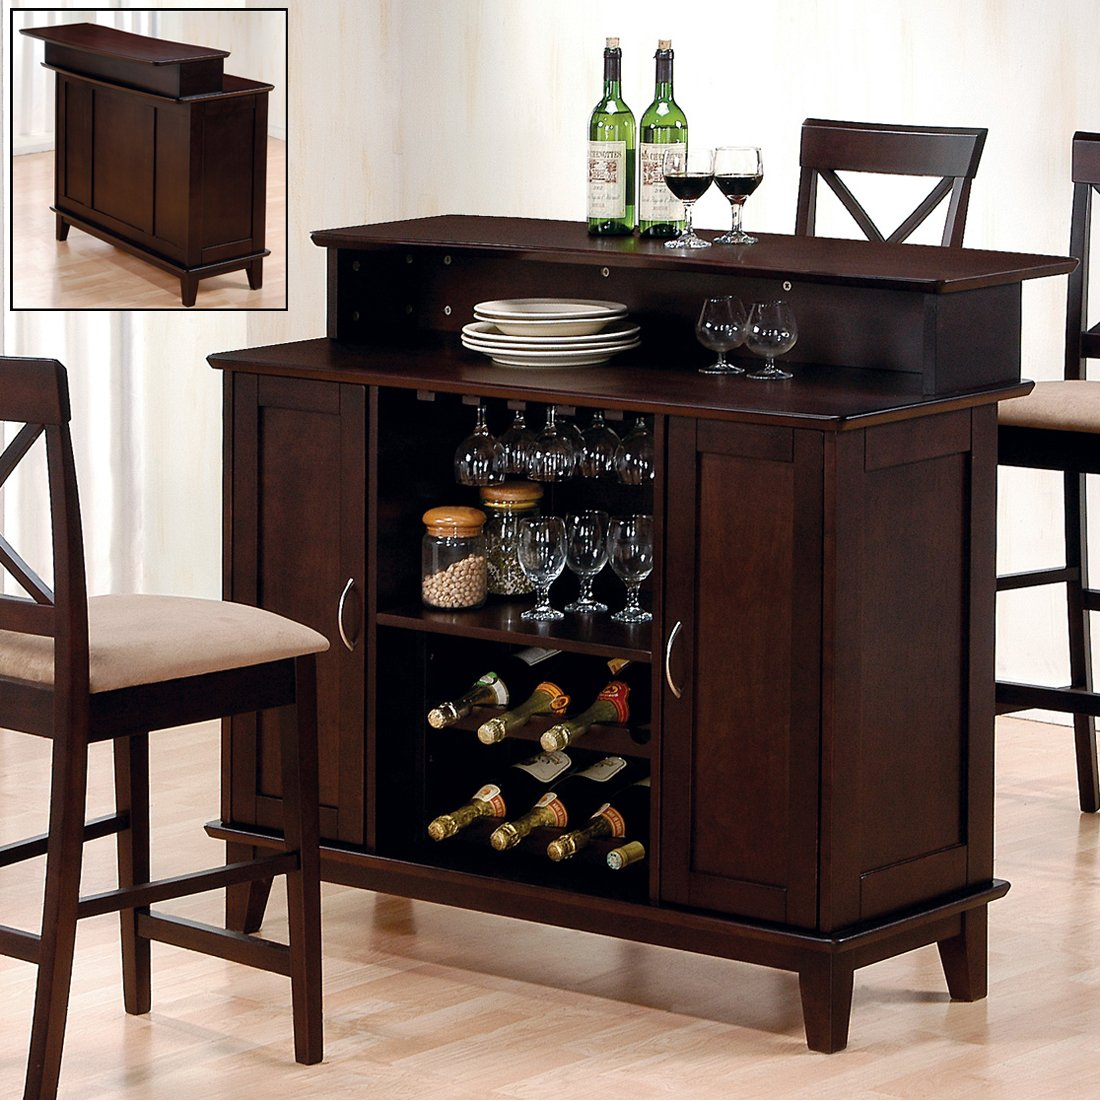 small bar furniture for apartment best decor things ForSmall Bar Furniture For Apartment